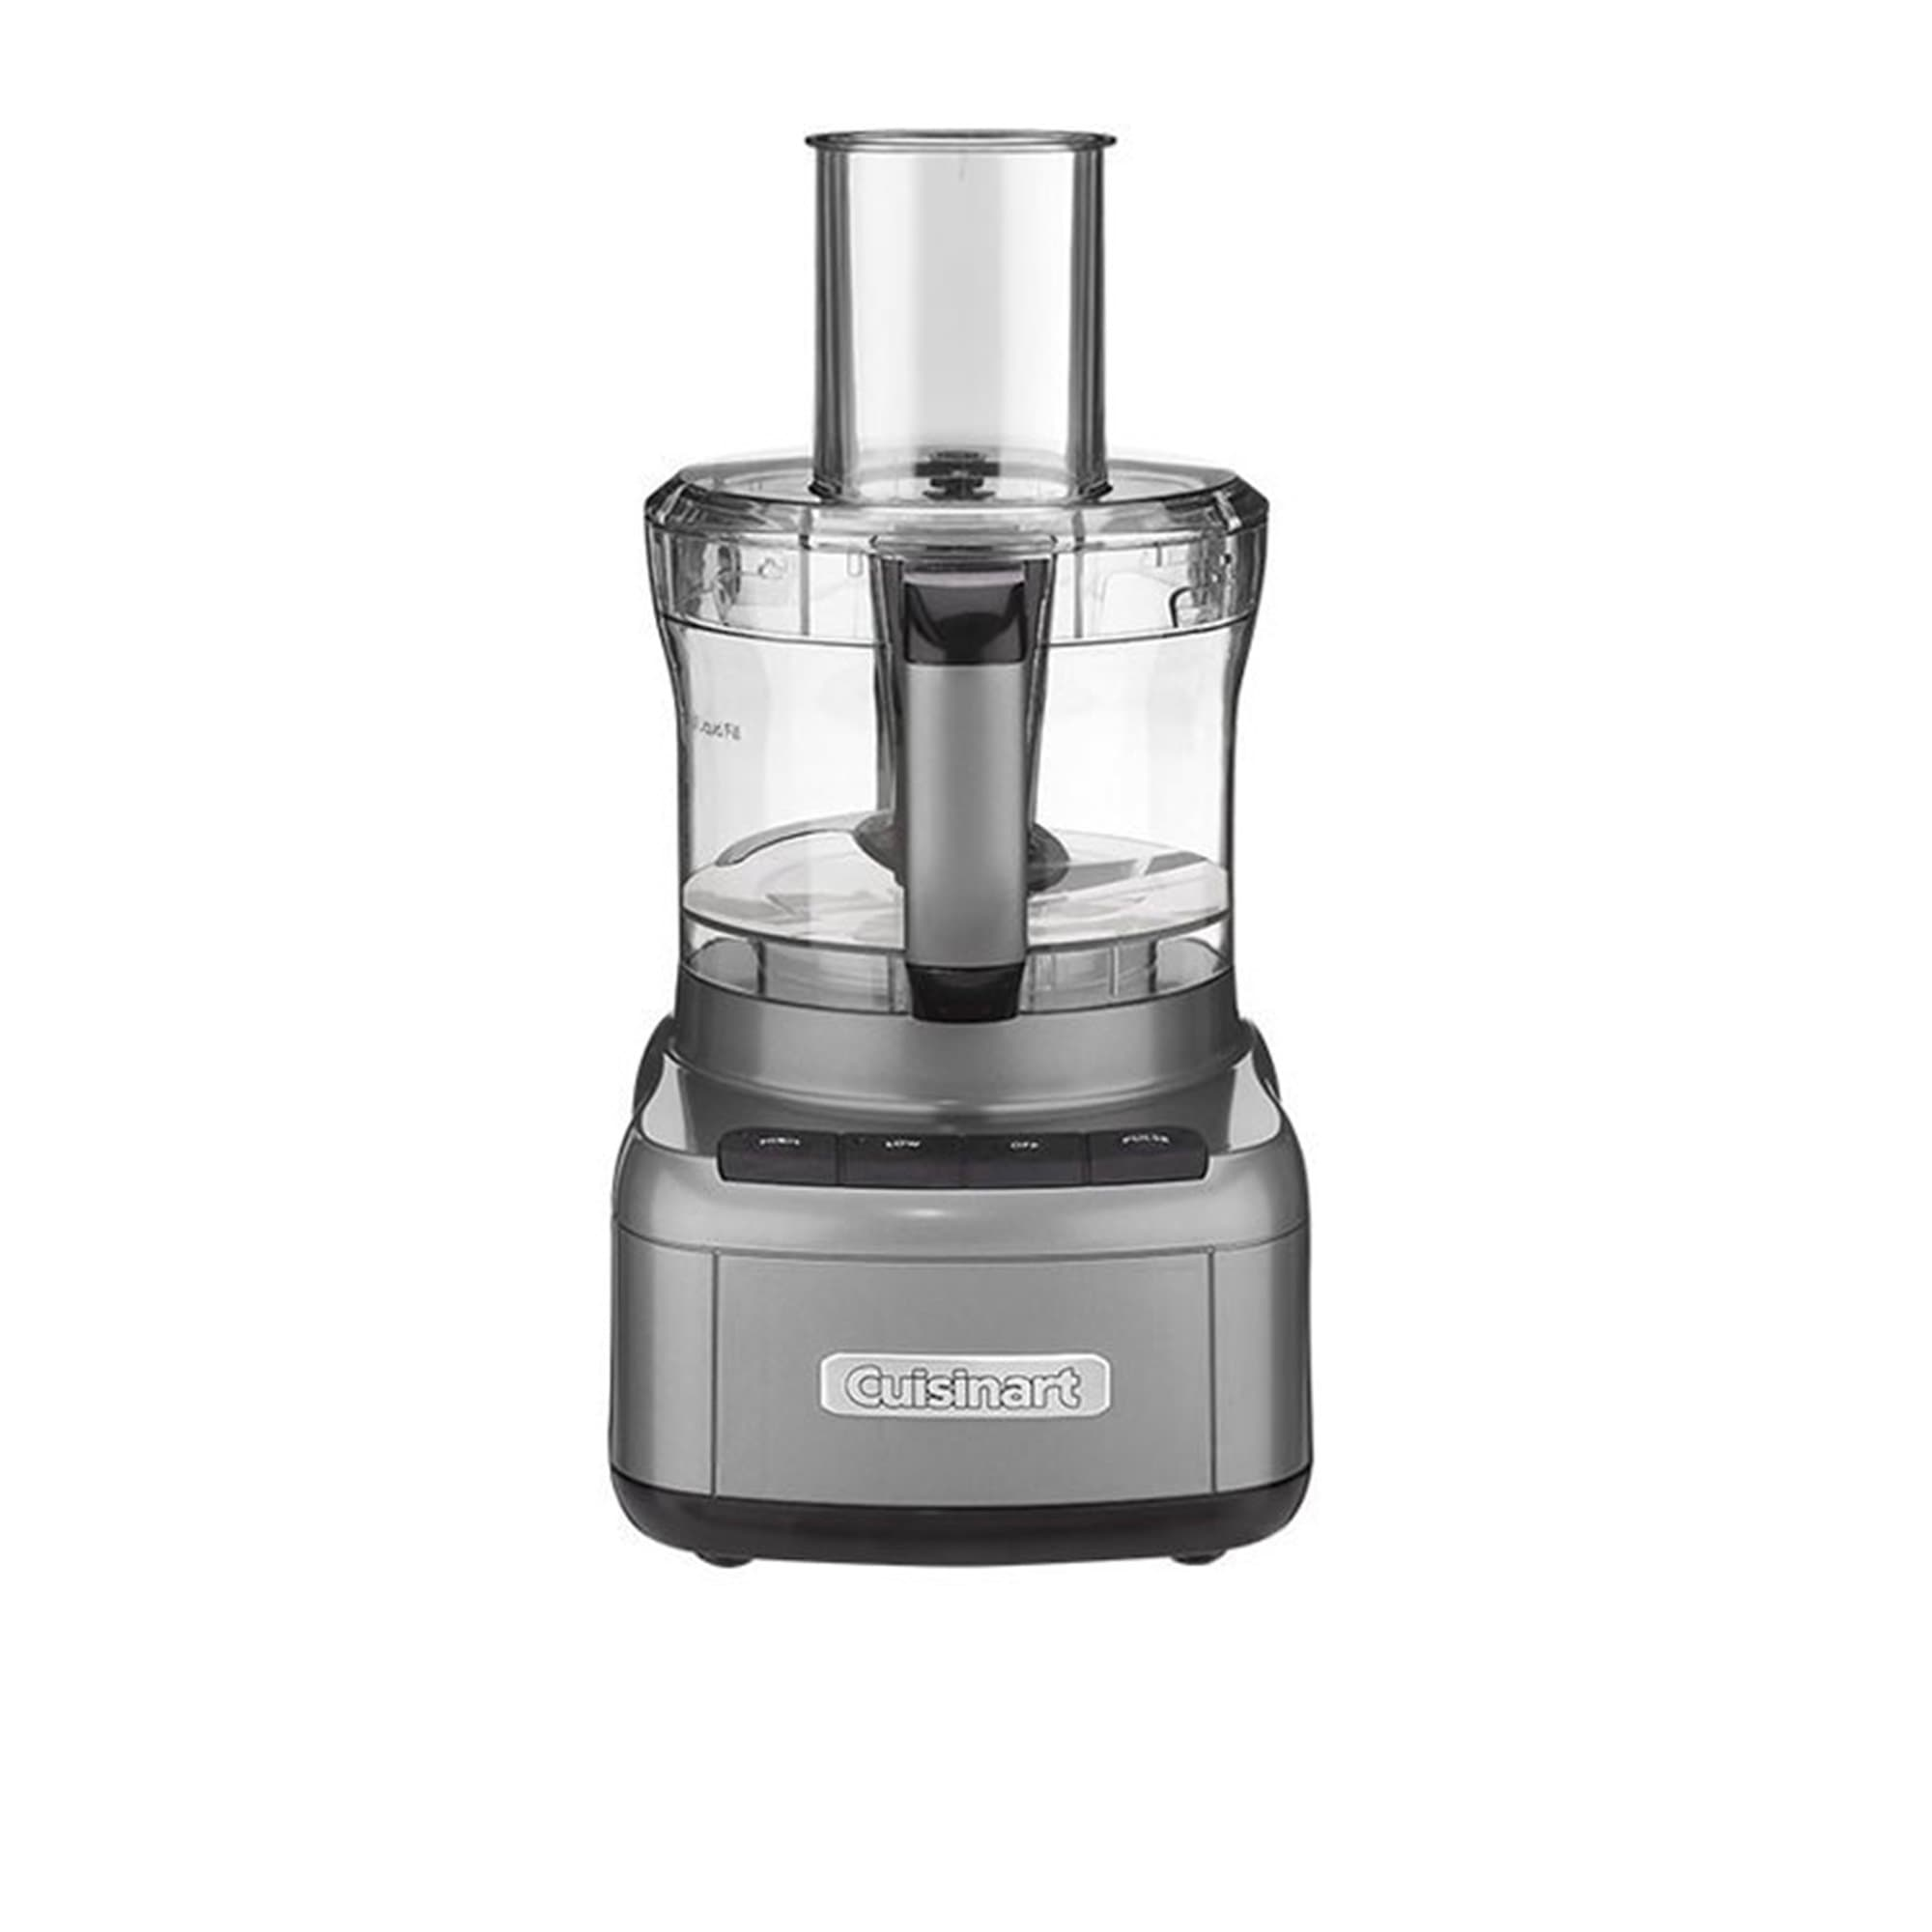 Cuisinart Food Processor 8 Cup Gun Metal Grey